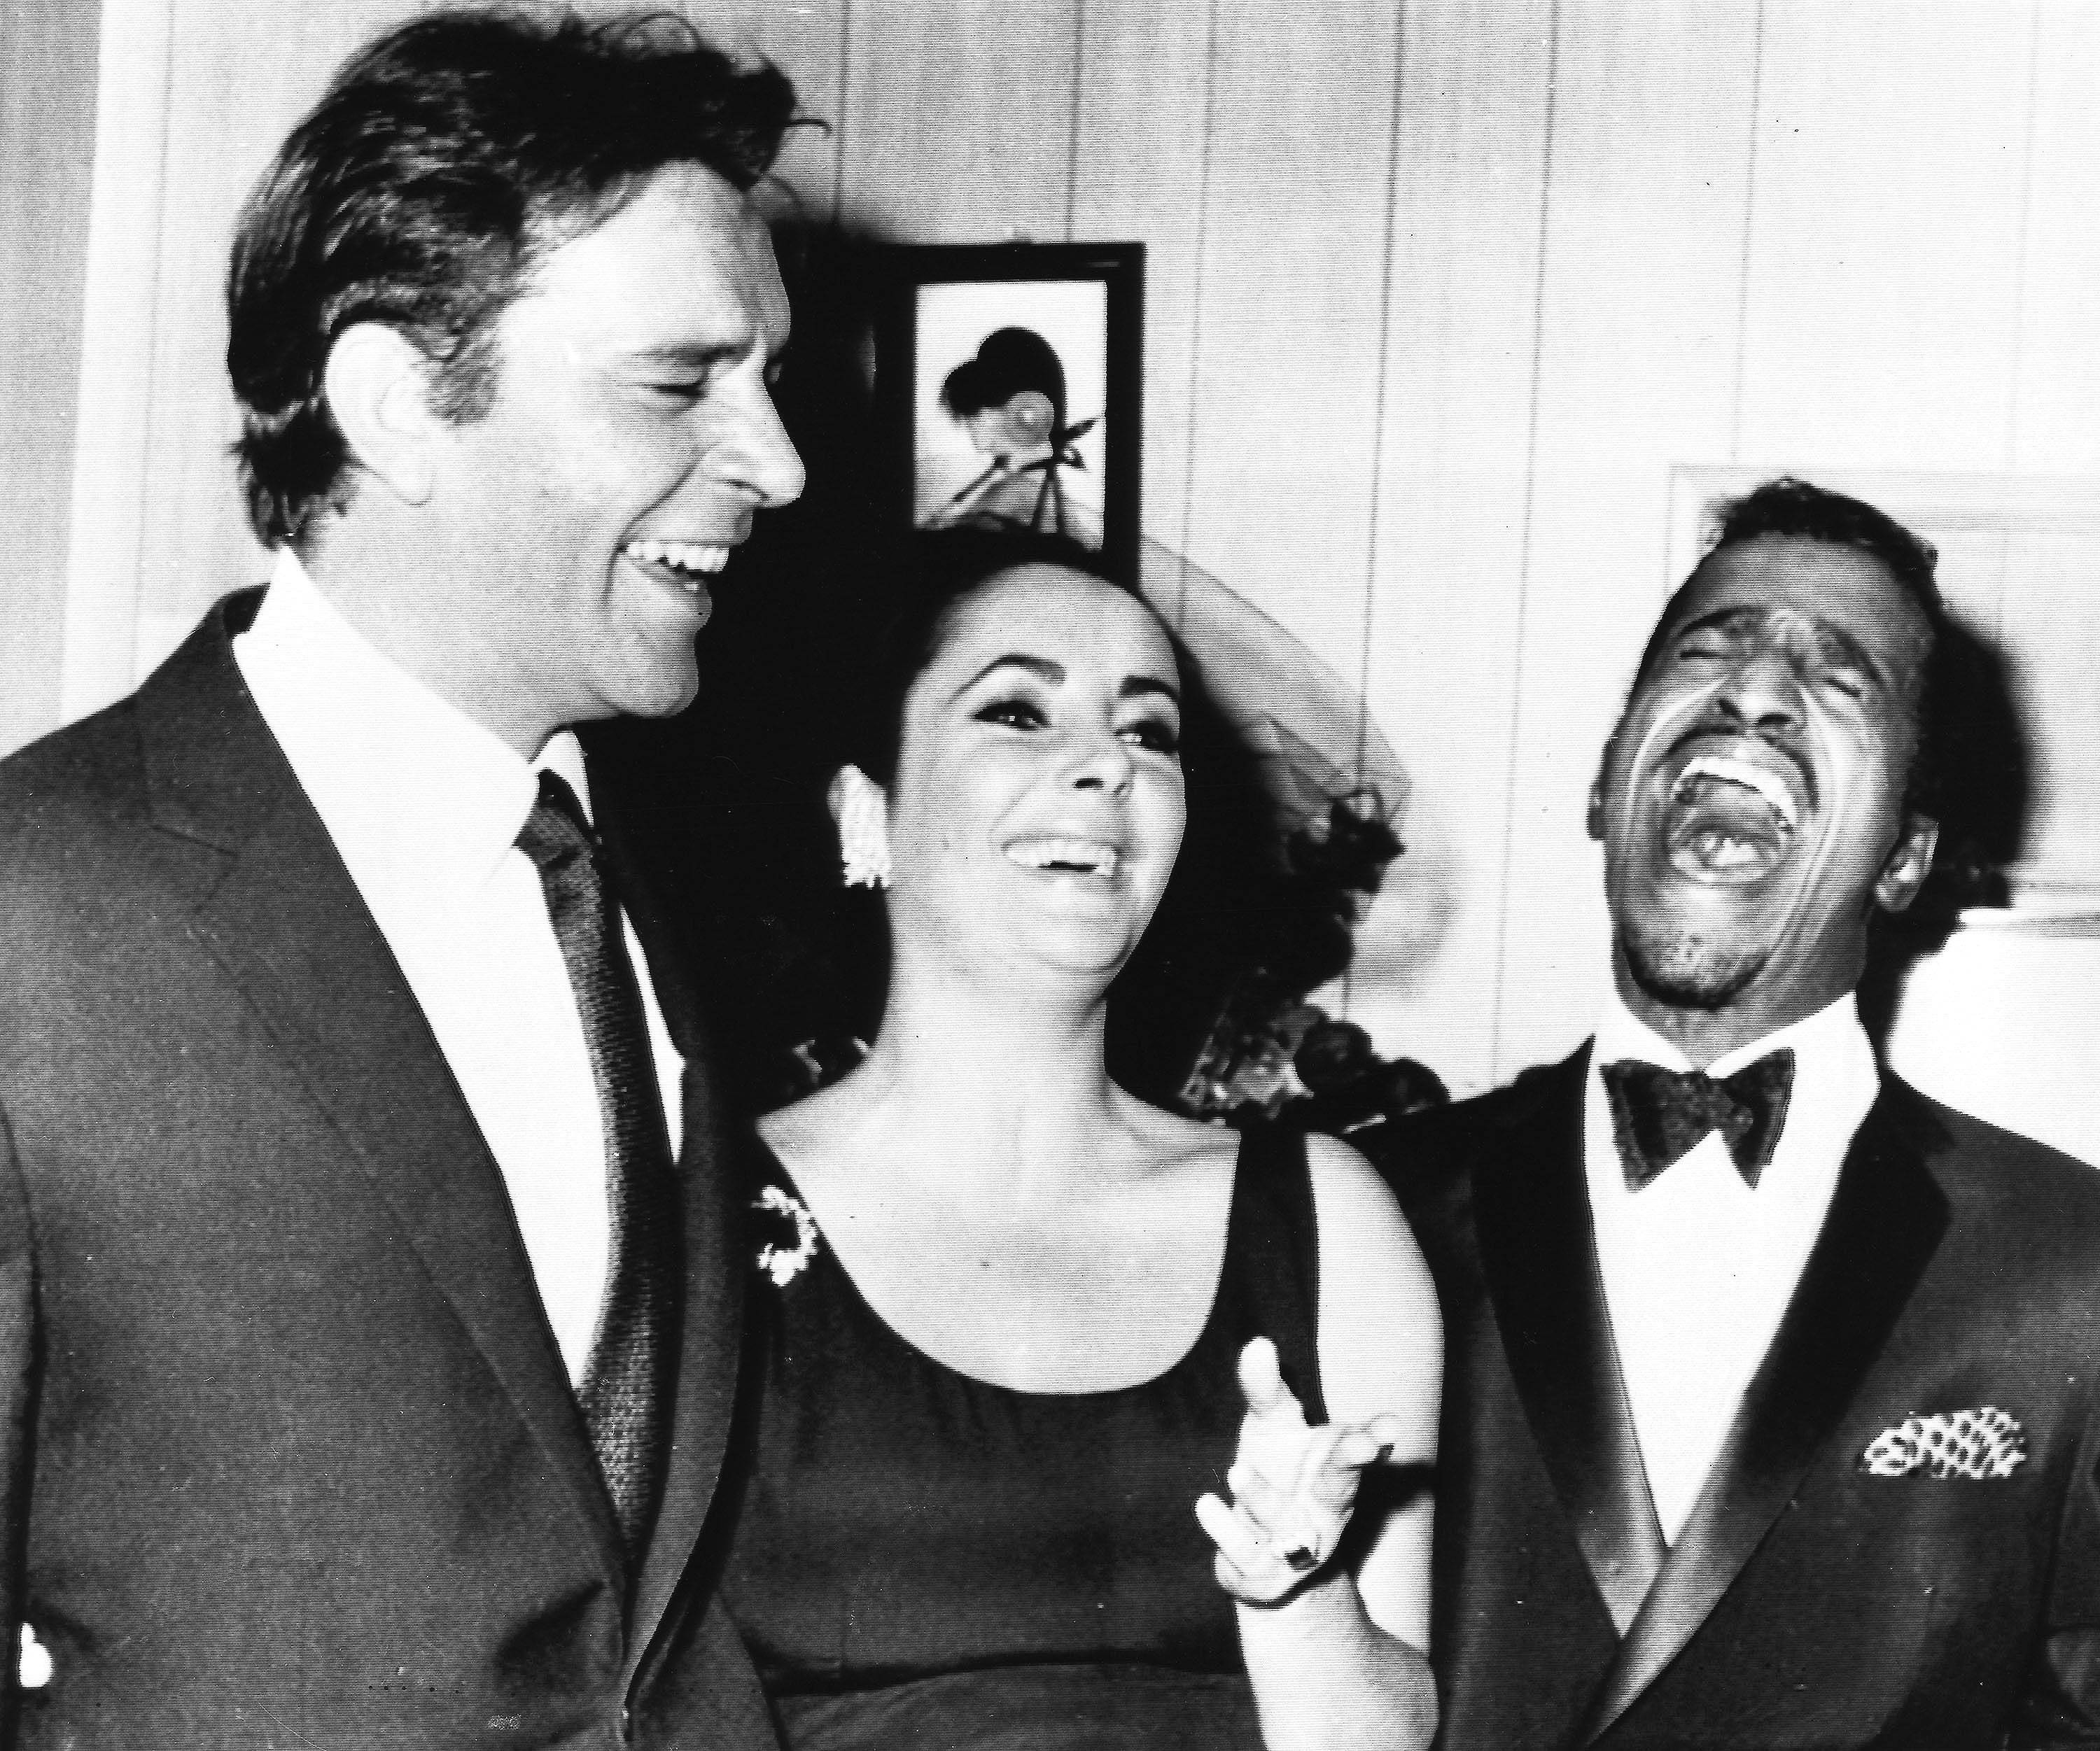 Elizabeth Taylor and husband Richard Burton share a joke with U.S entertainer Sammy Davis Jr., in Davis' dressing room after his opening at New York's Copacabana nightclub, April. 30, 1964.